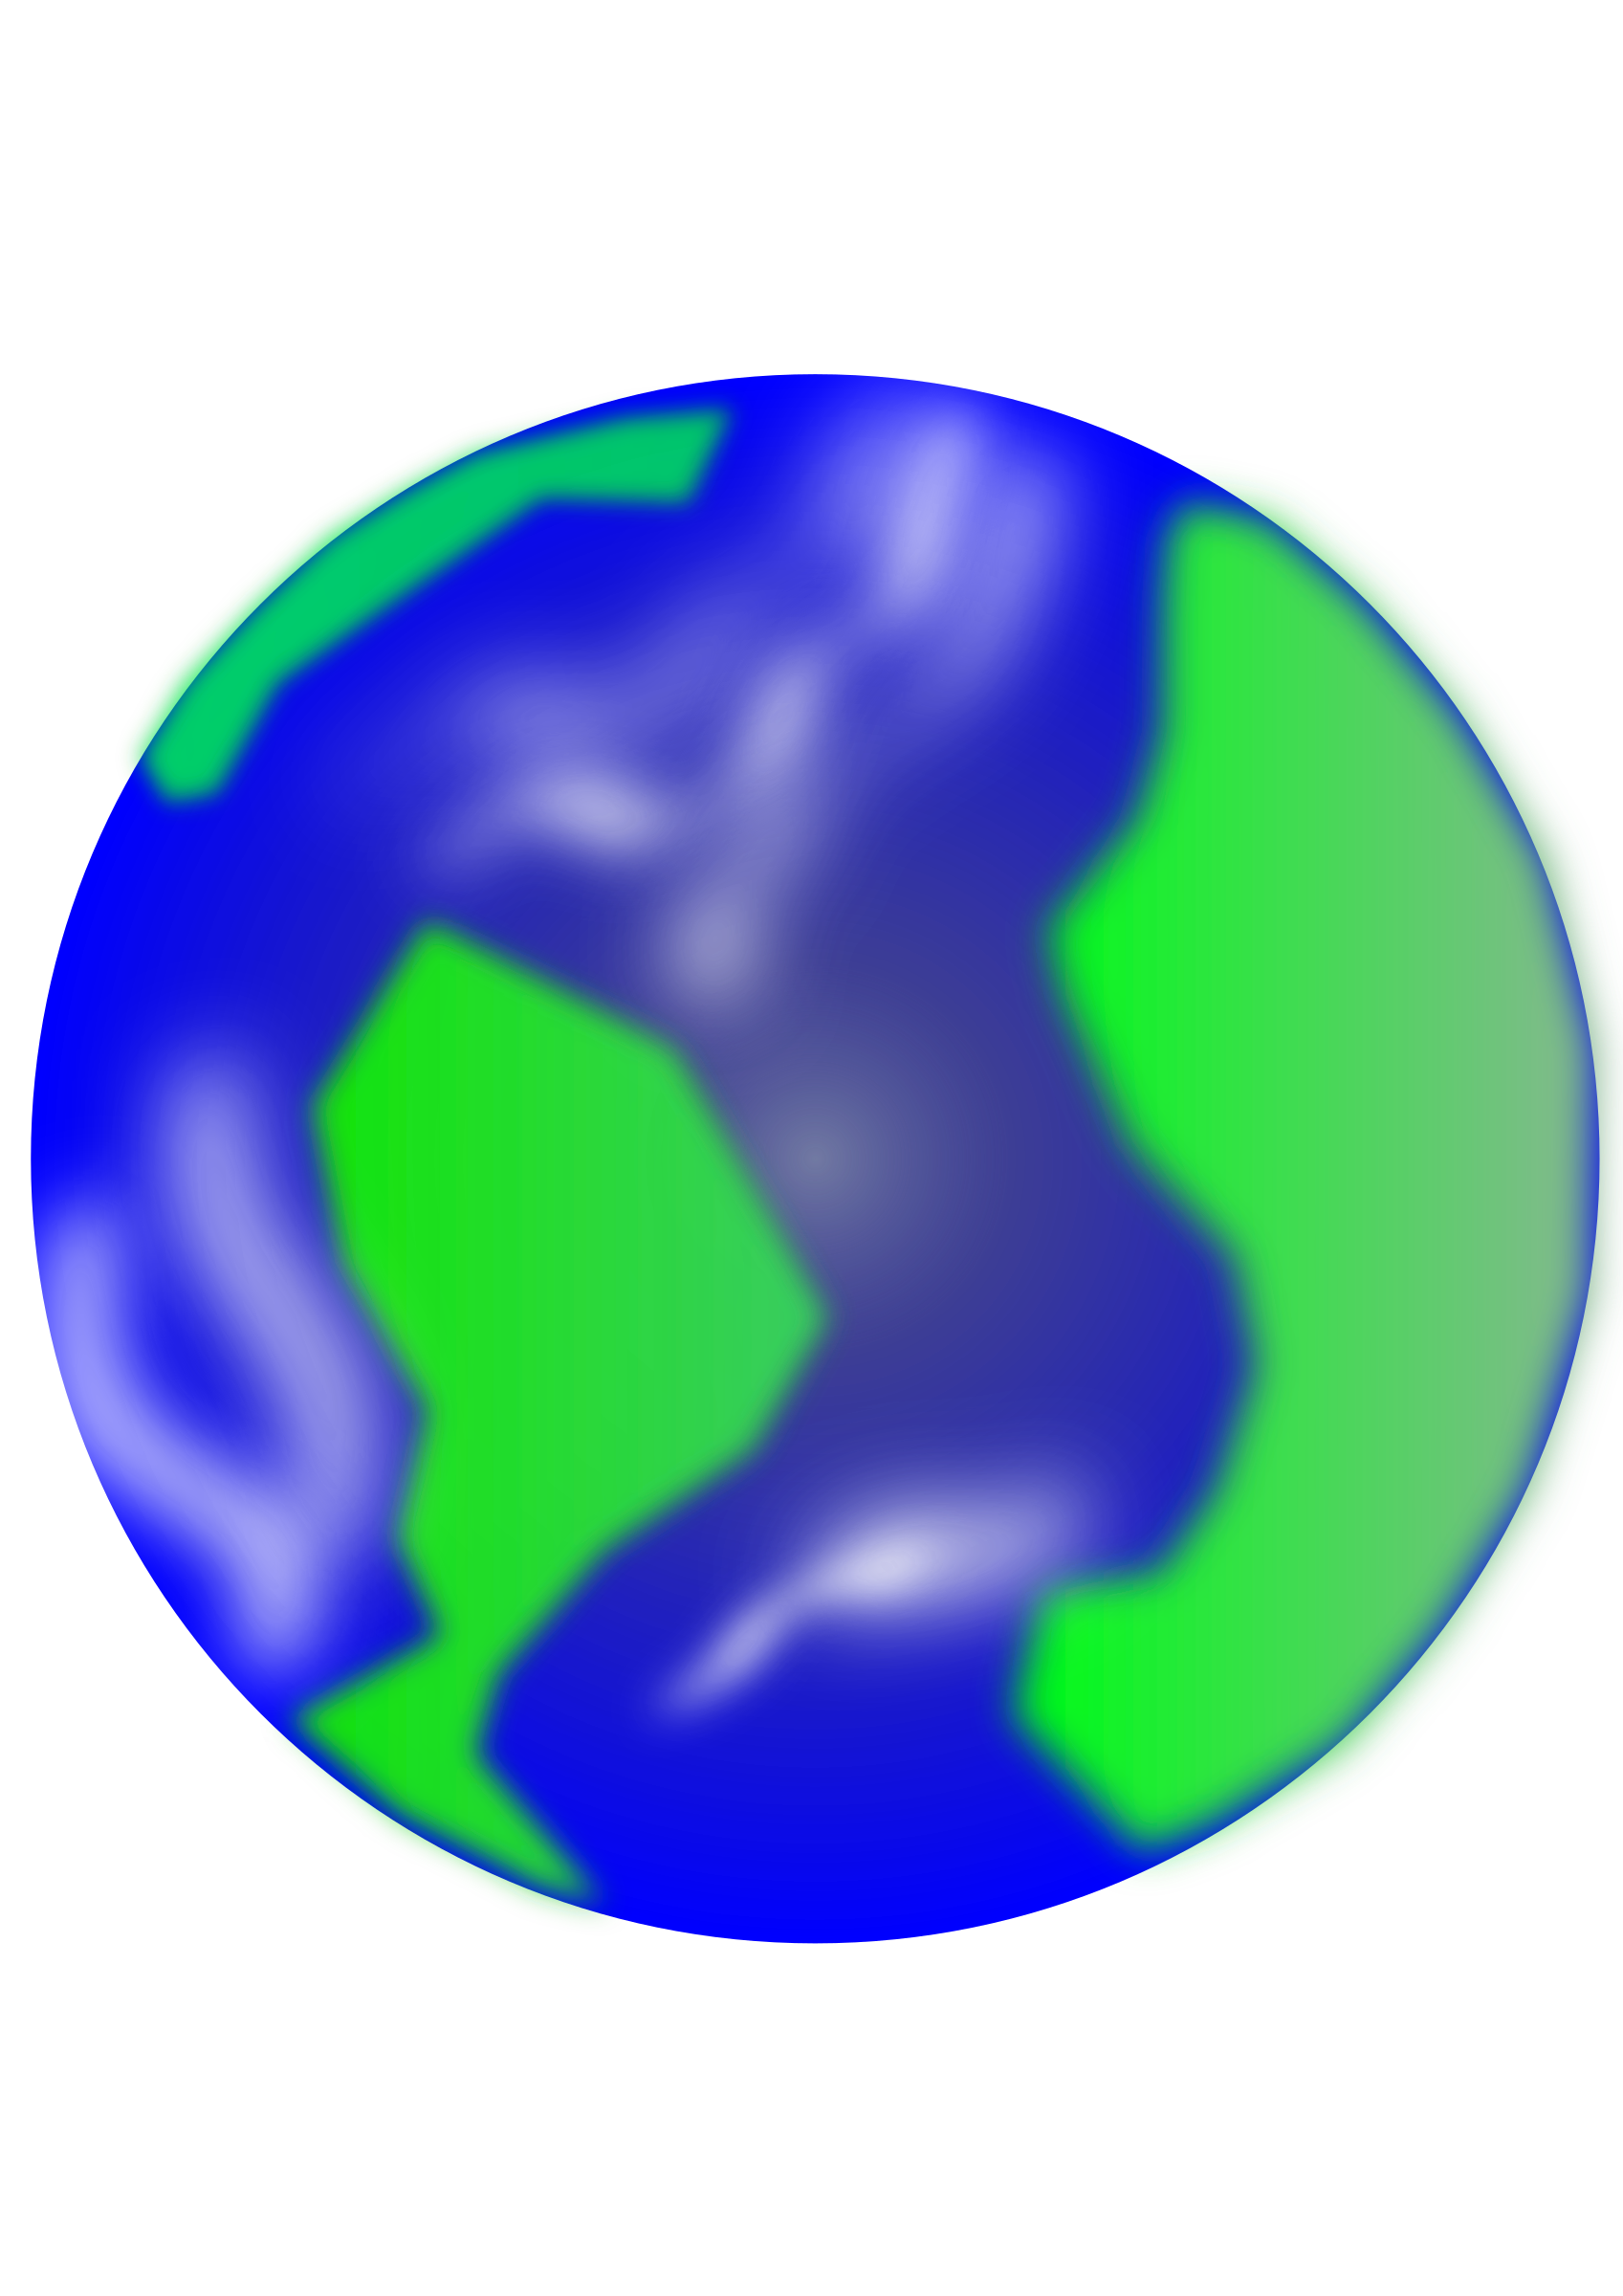 Planet clipart tierra. Icons png free and